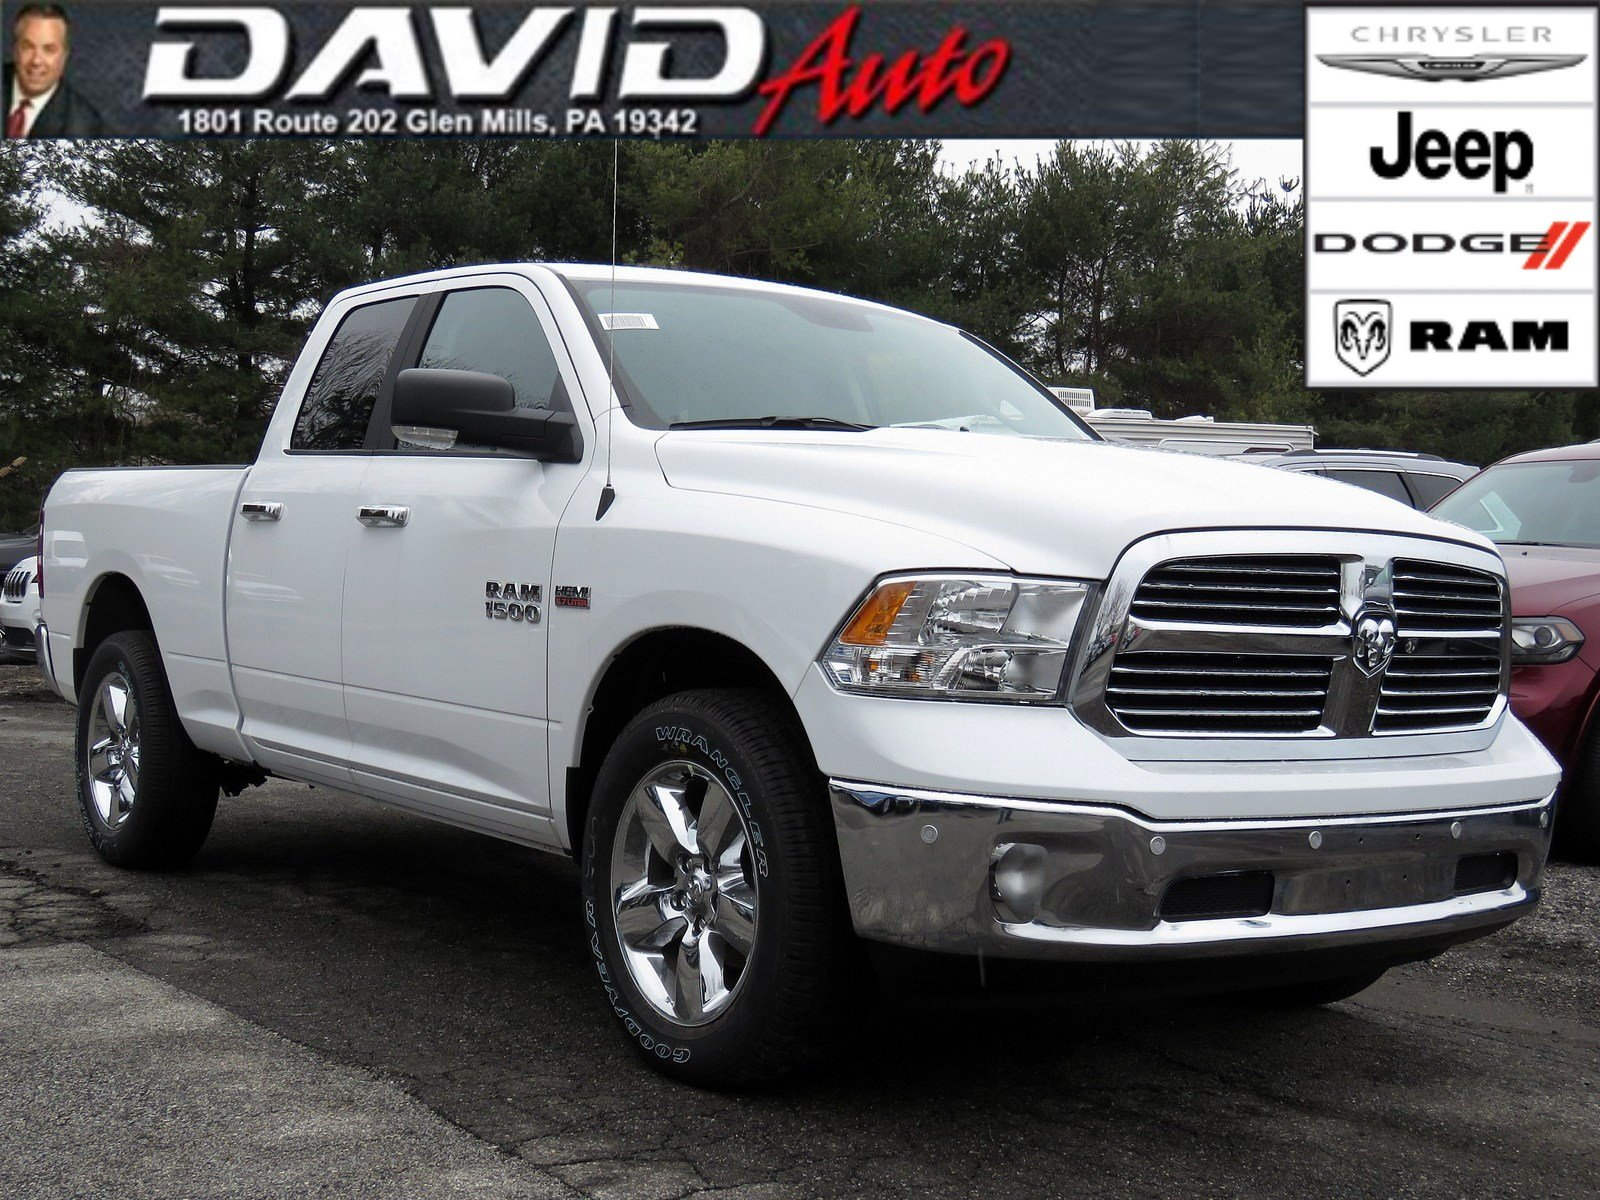 Ram Big Horn >> New 2018 Ram 1500 Big Horn Quad Cab In Glen Mills R18089 David